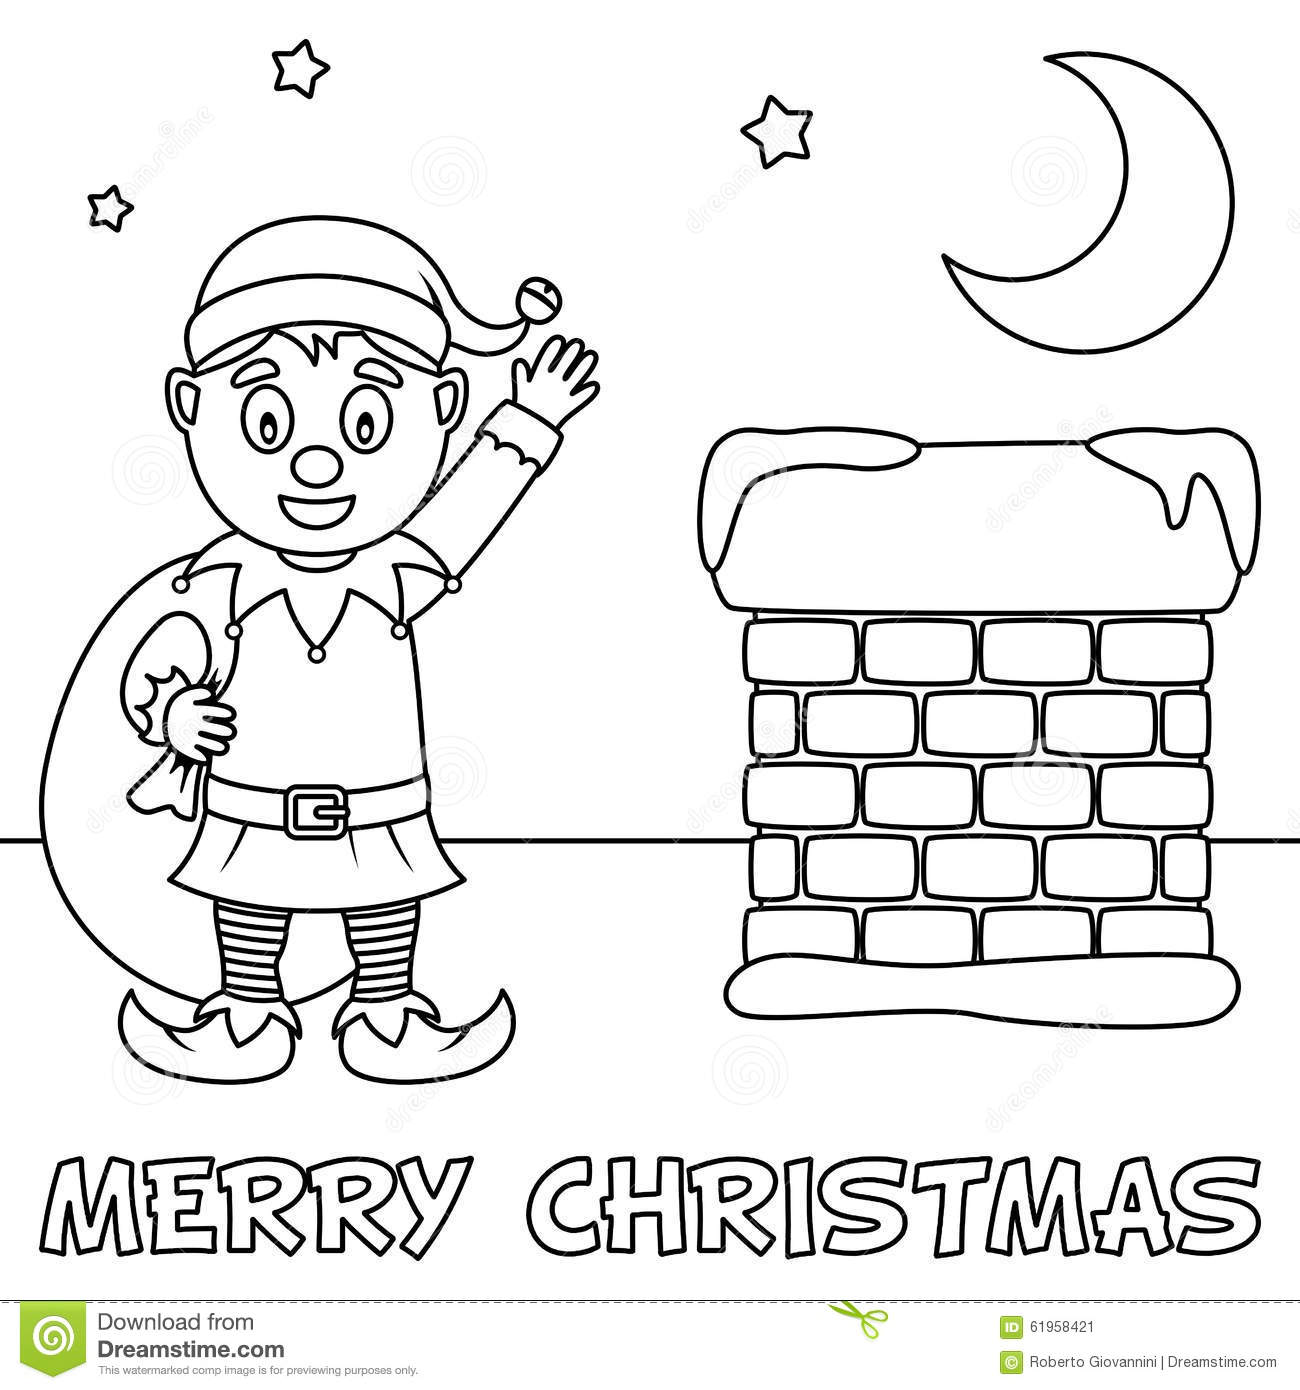 Coloring Christmas Card With Cute Elf Stock Vector